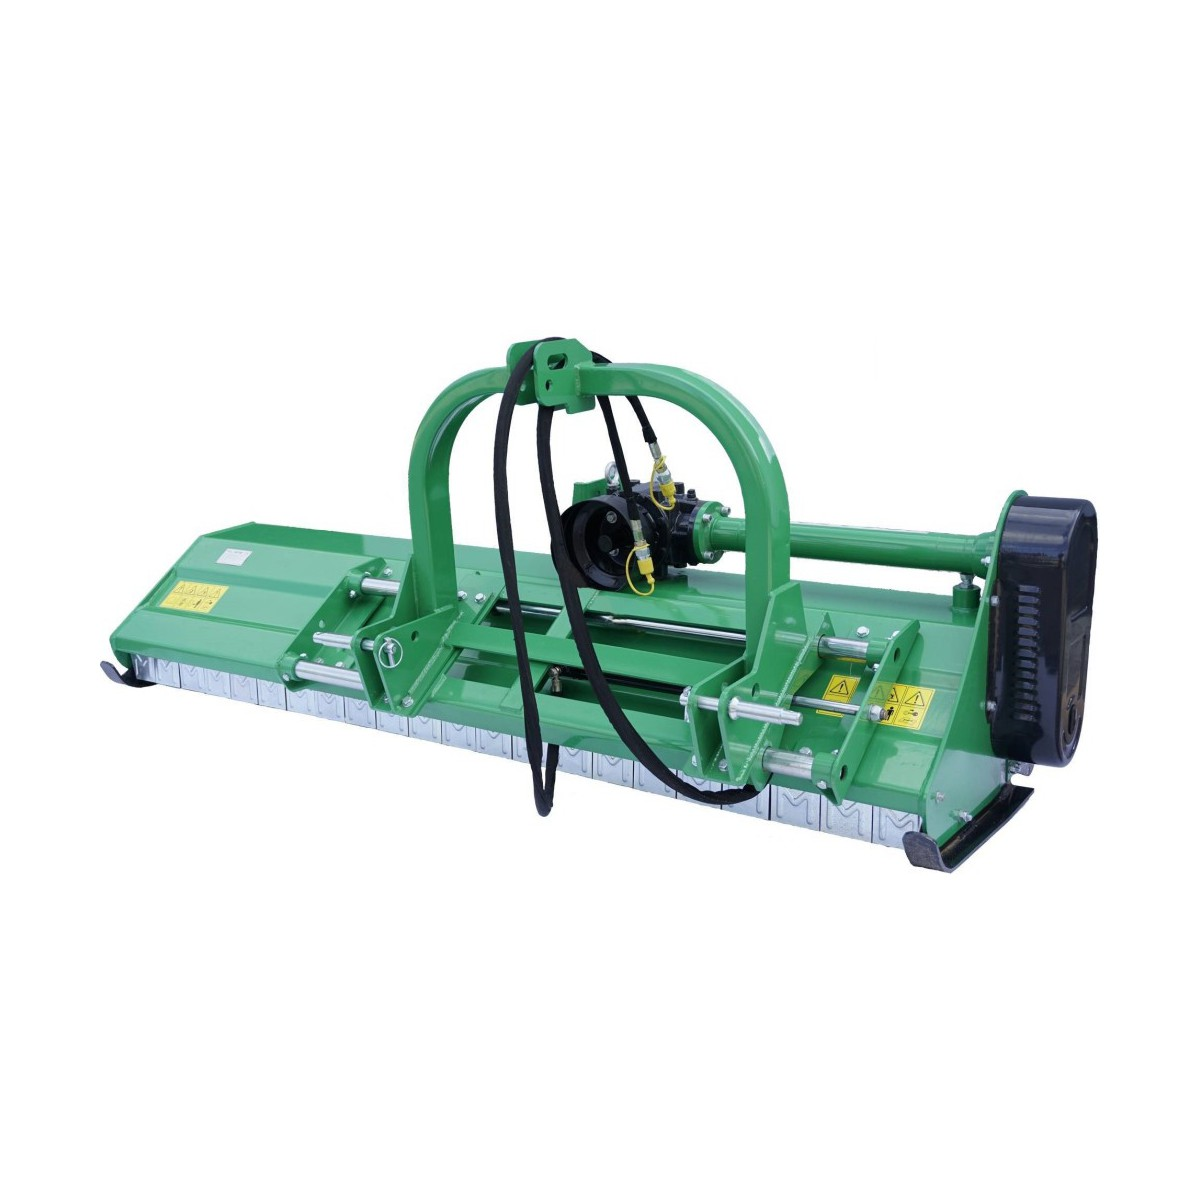 Heavy class flail mulcher (mulch) EFGCH with a working width of 165 cm with side shift